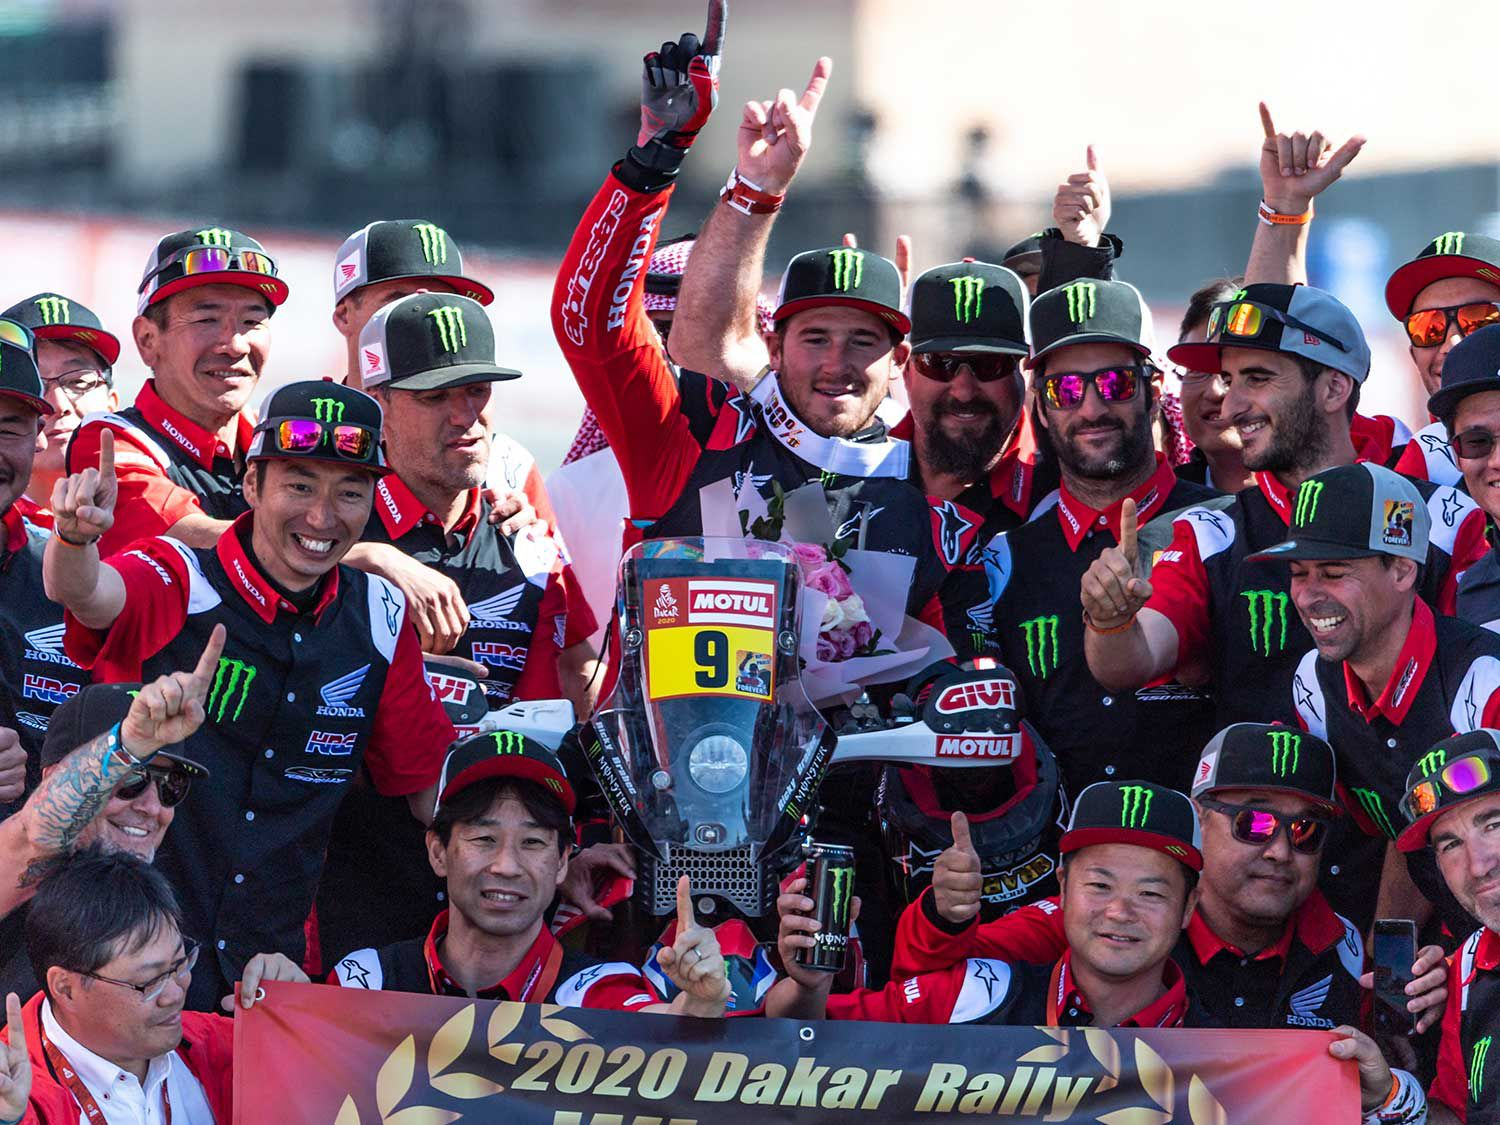 Ricky Brabec celebrates his victory at the 2020 Dakar Rally with the rest of his Monster Honda Factory Racing Team in Saudi Arabia.